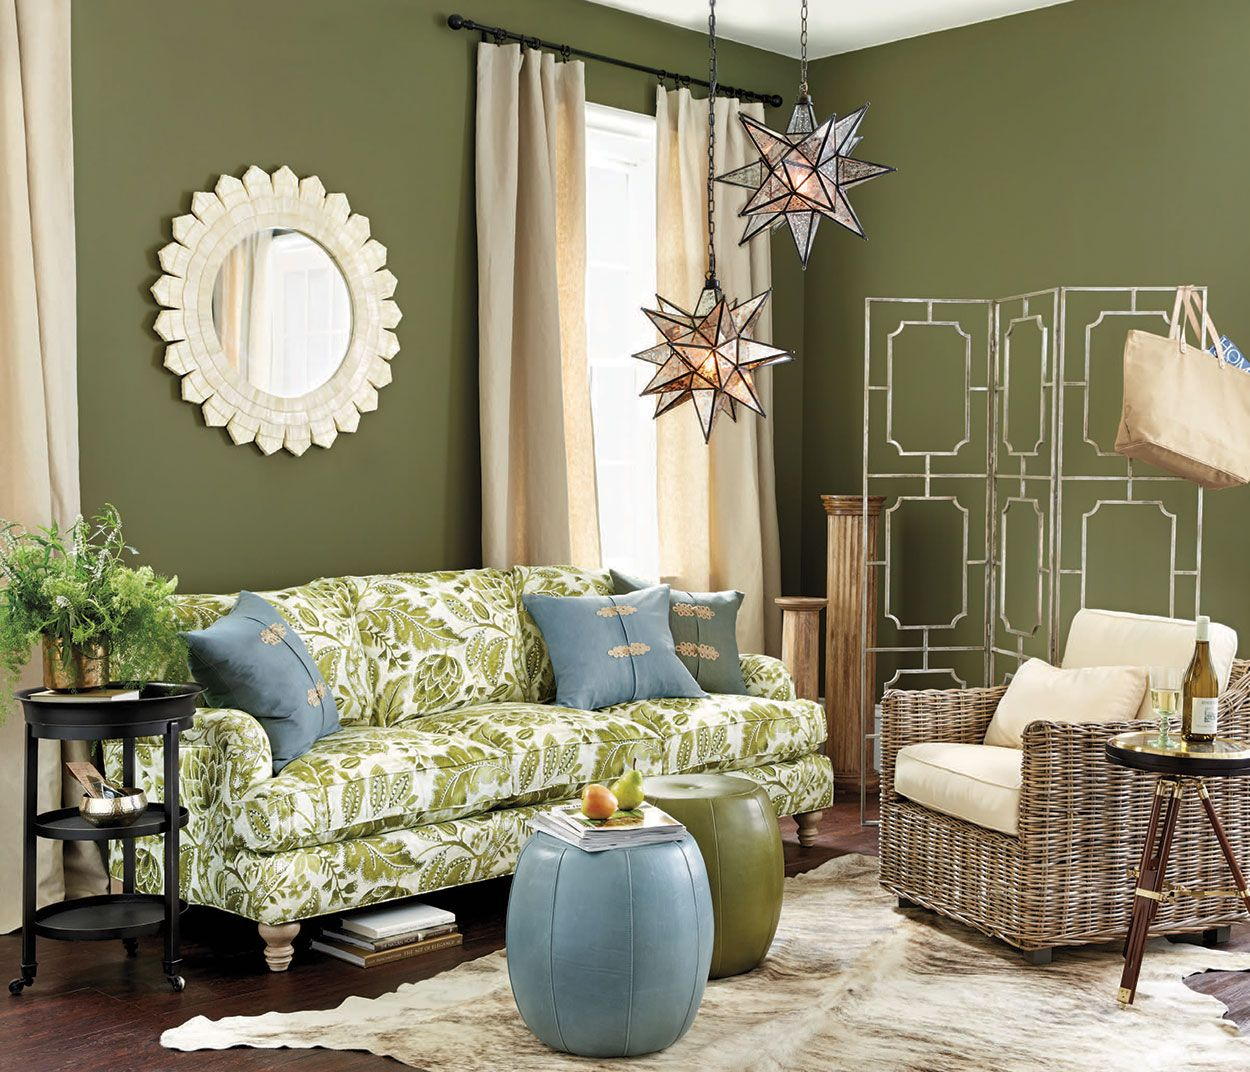 Benjamin Moore Colors For Your Living Room Decor: Living Rooms Ideas For Decorating